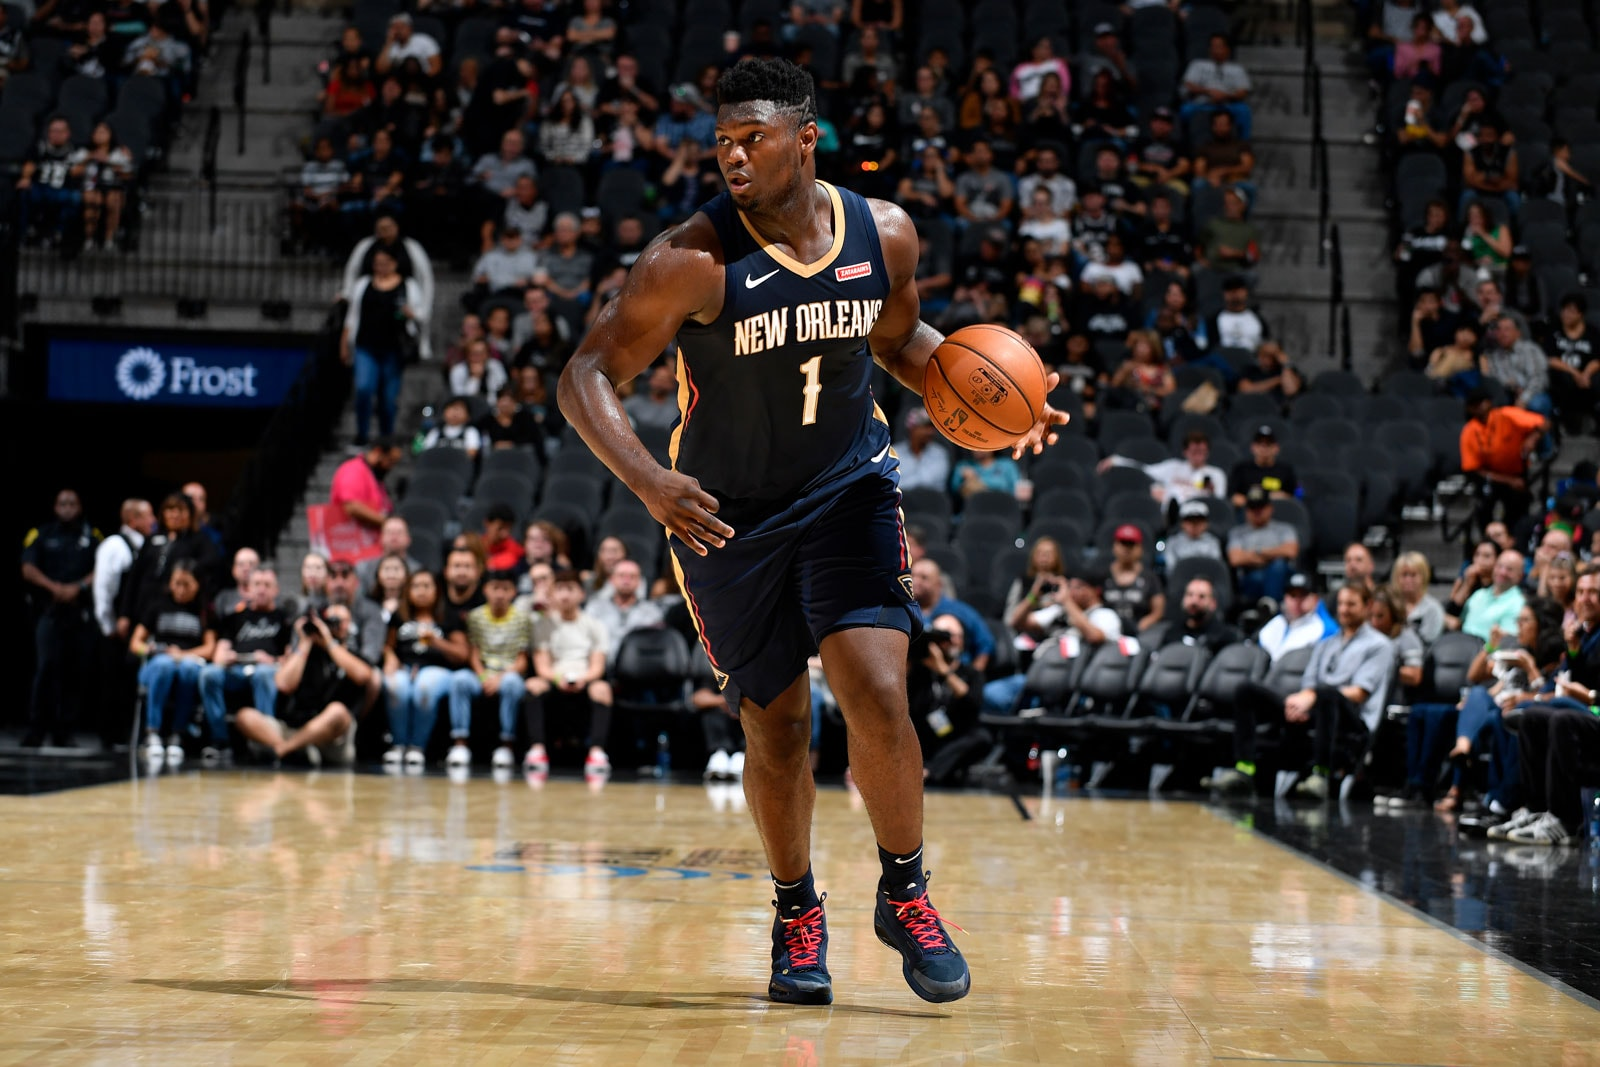 Zion Williamson #1 of the New Orleans Pelicans handles the ball against the San Antonio Spurs during a pre-season game on October 13, 2019 at the AT&T Center in San Antonio, Texas.